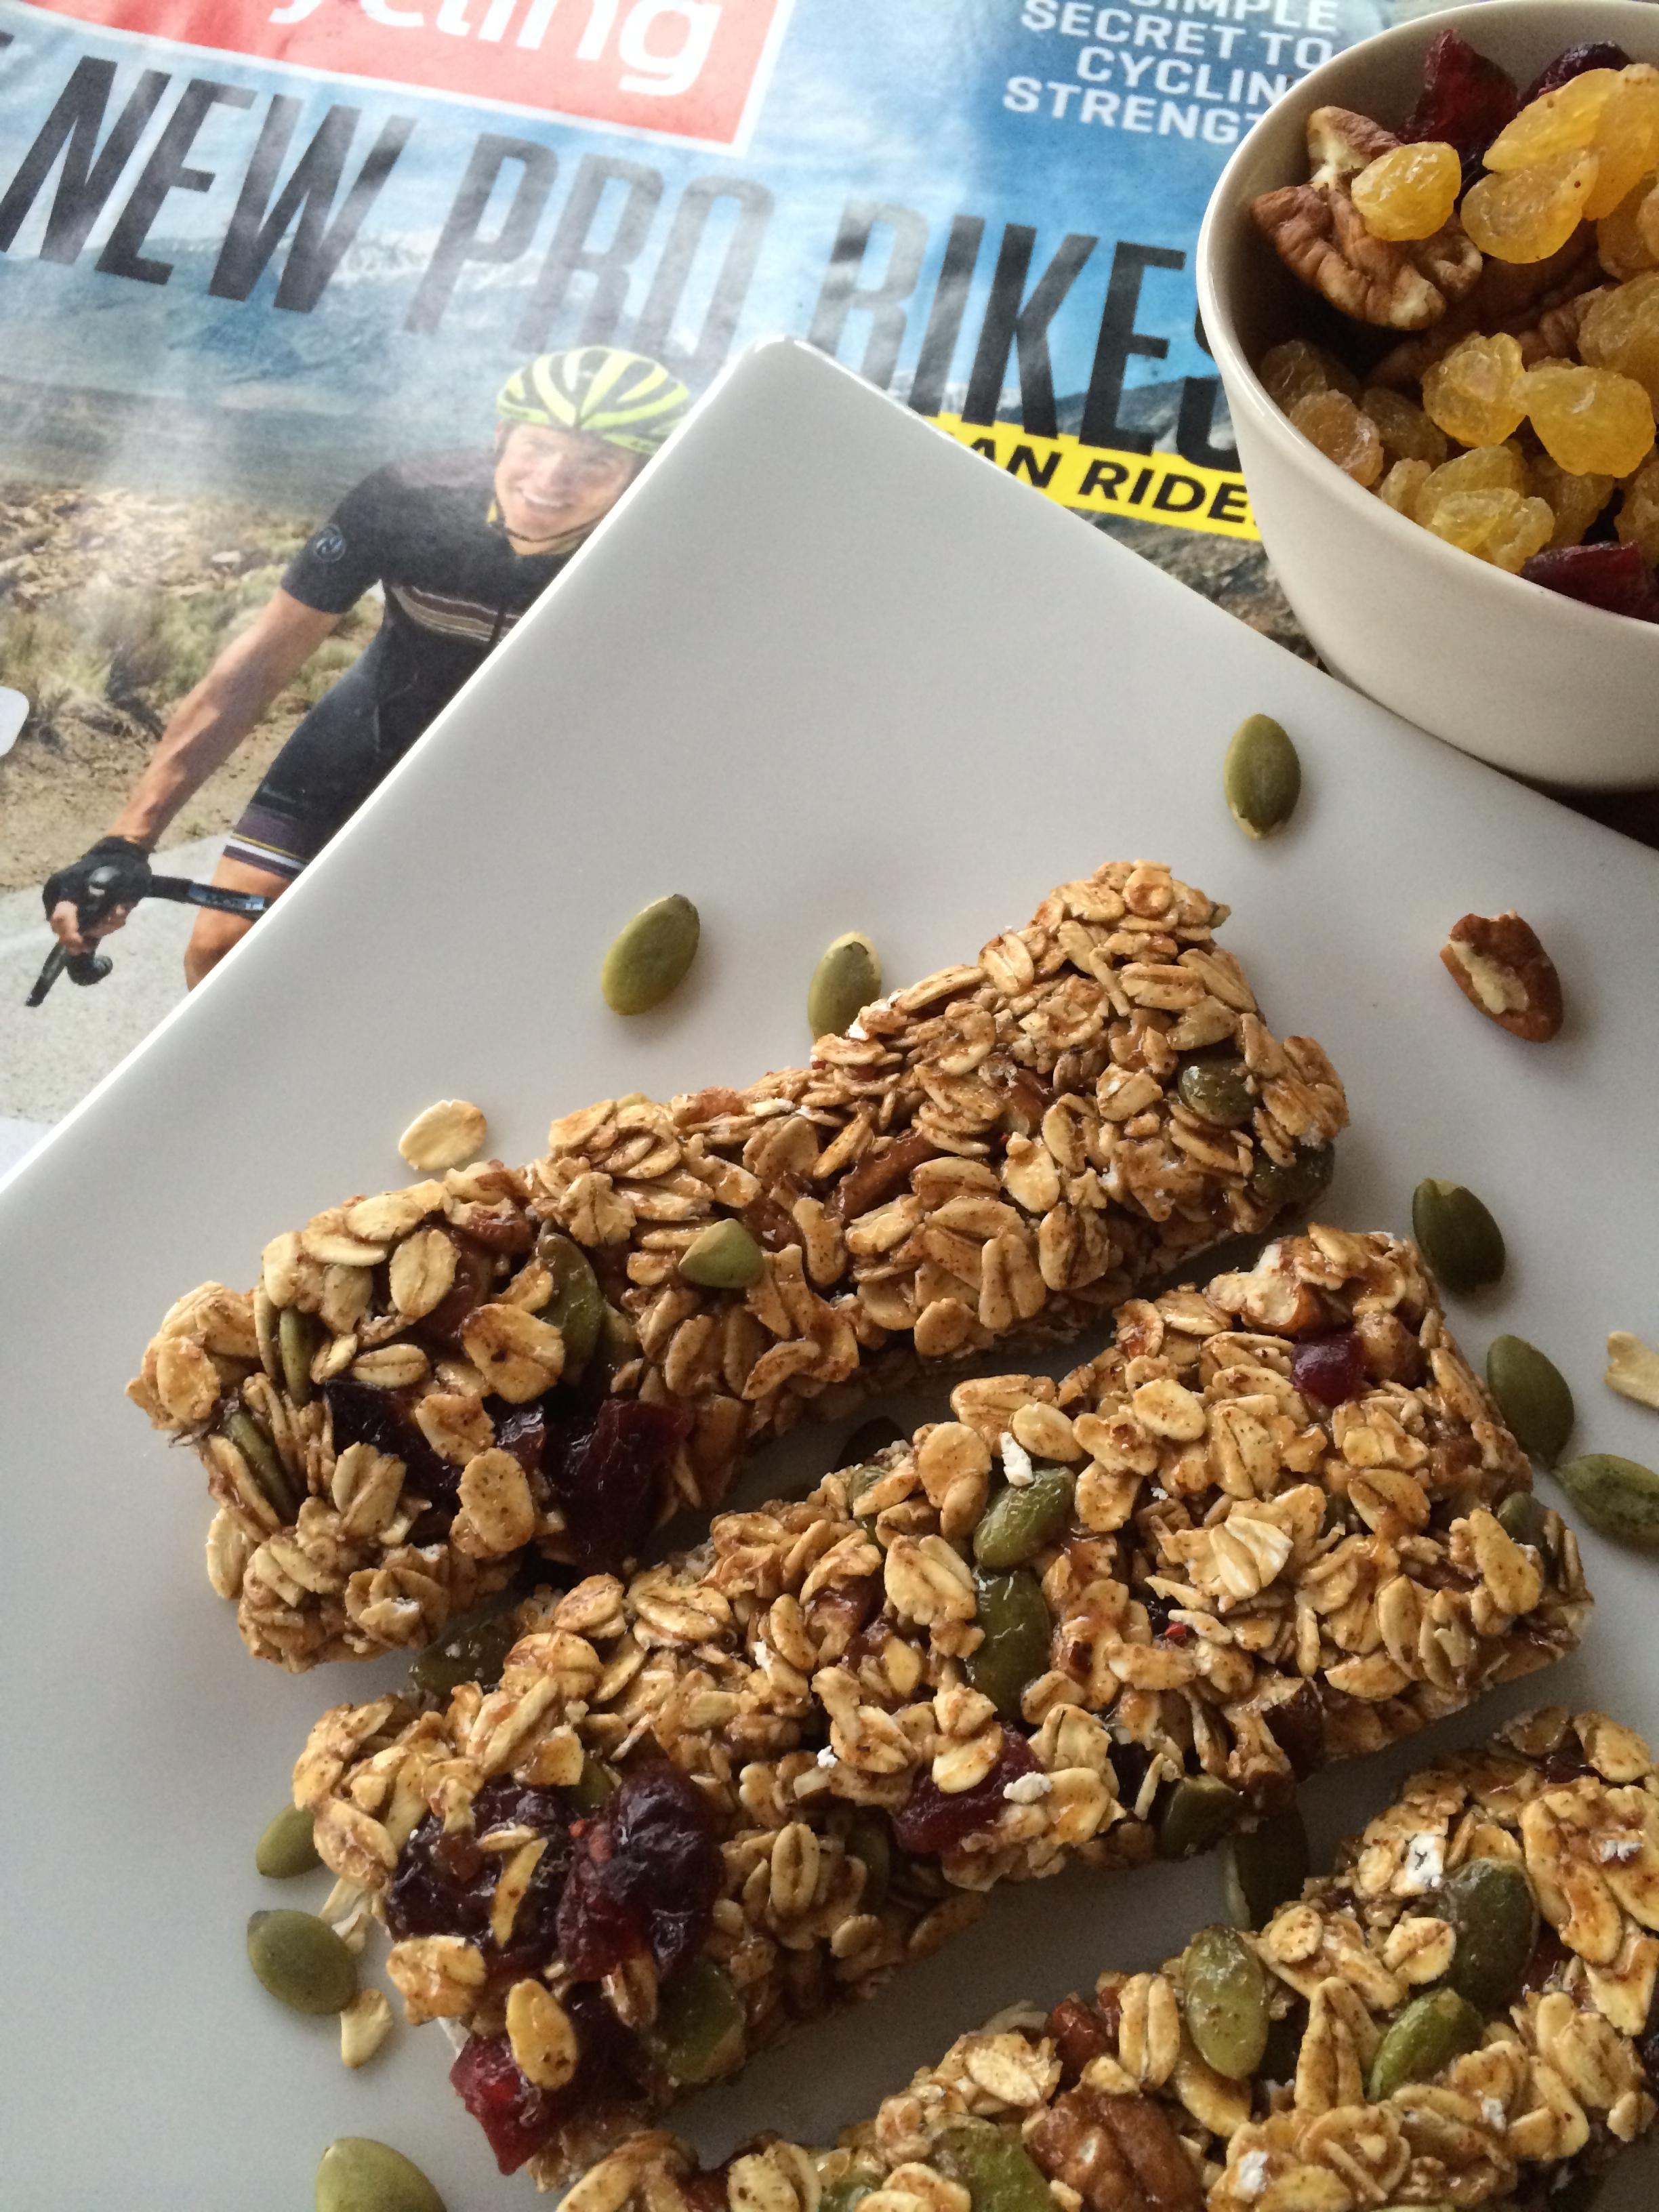 Nutrition Bars Fit for a Triathlete